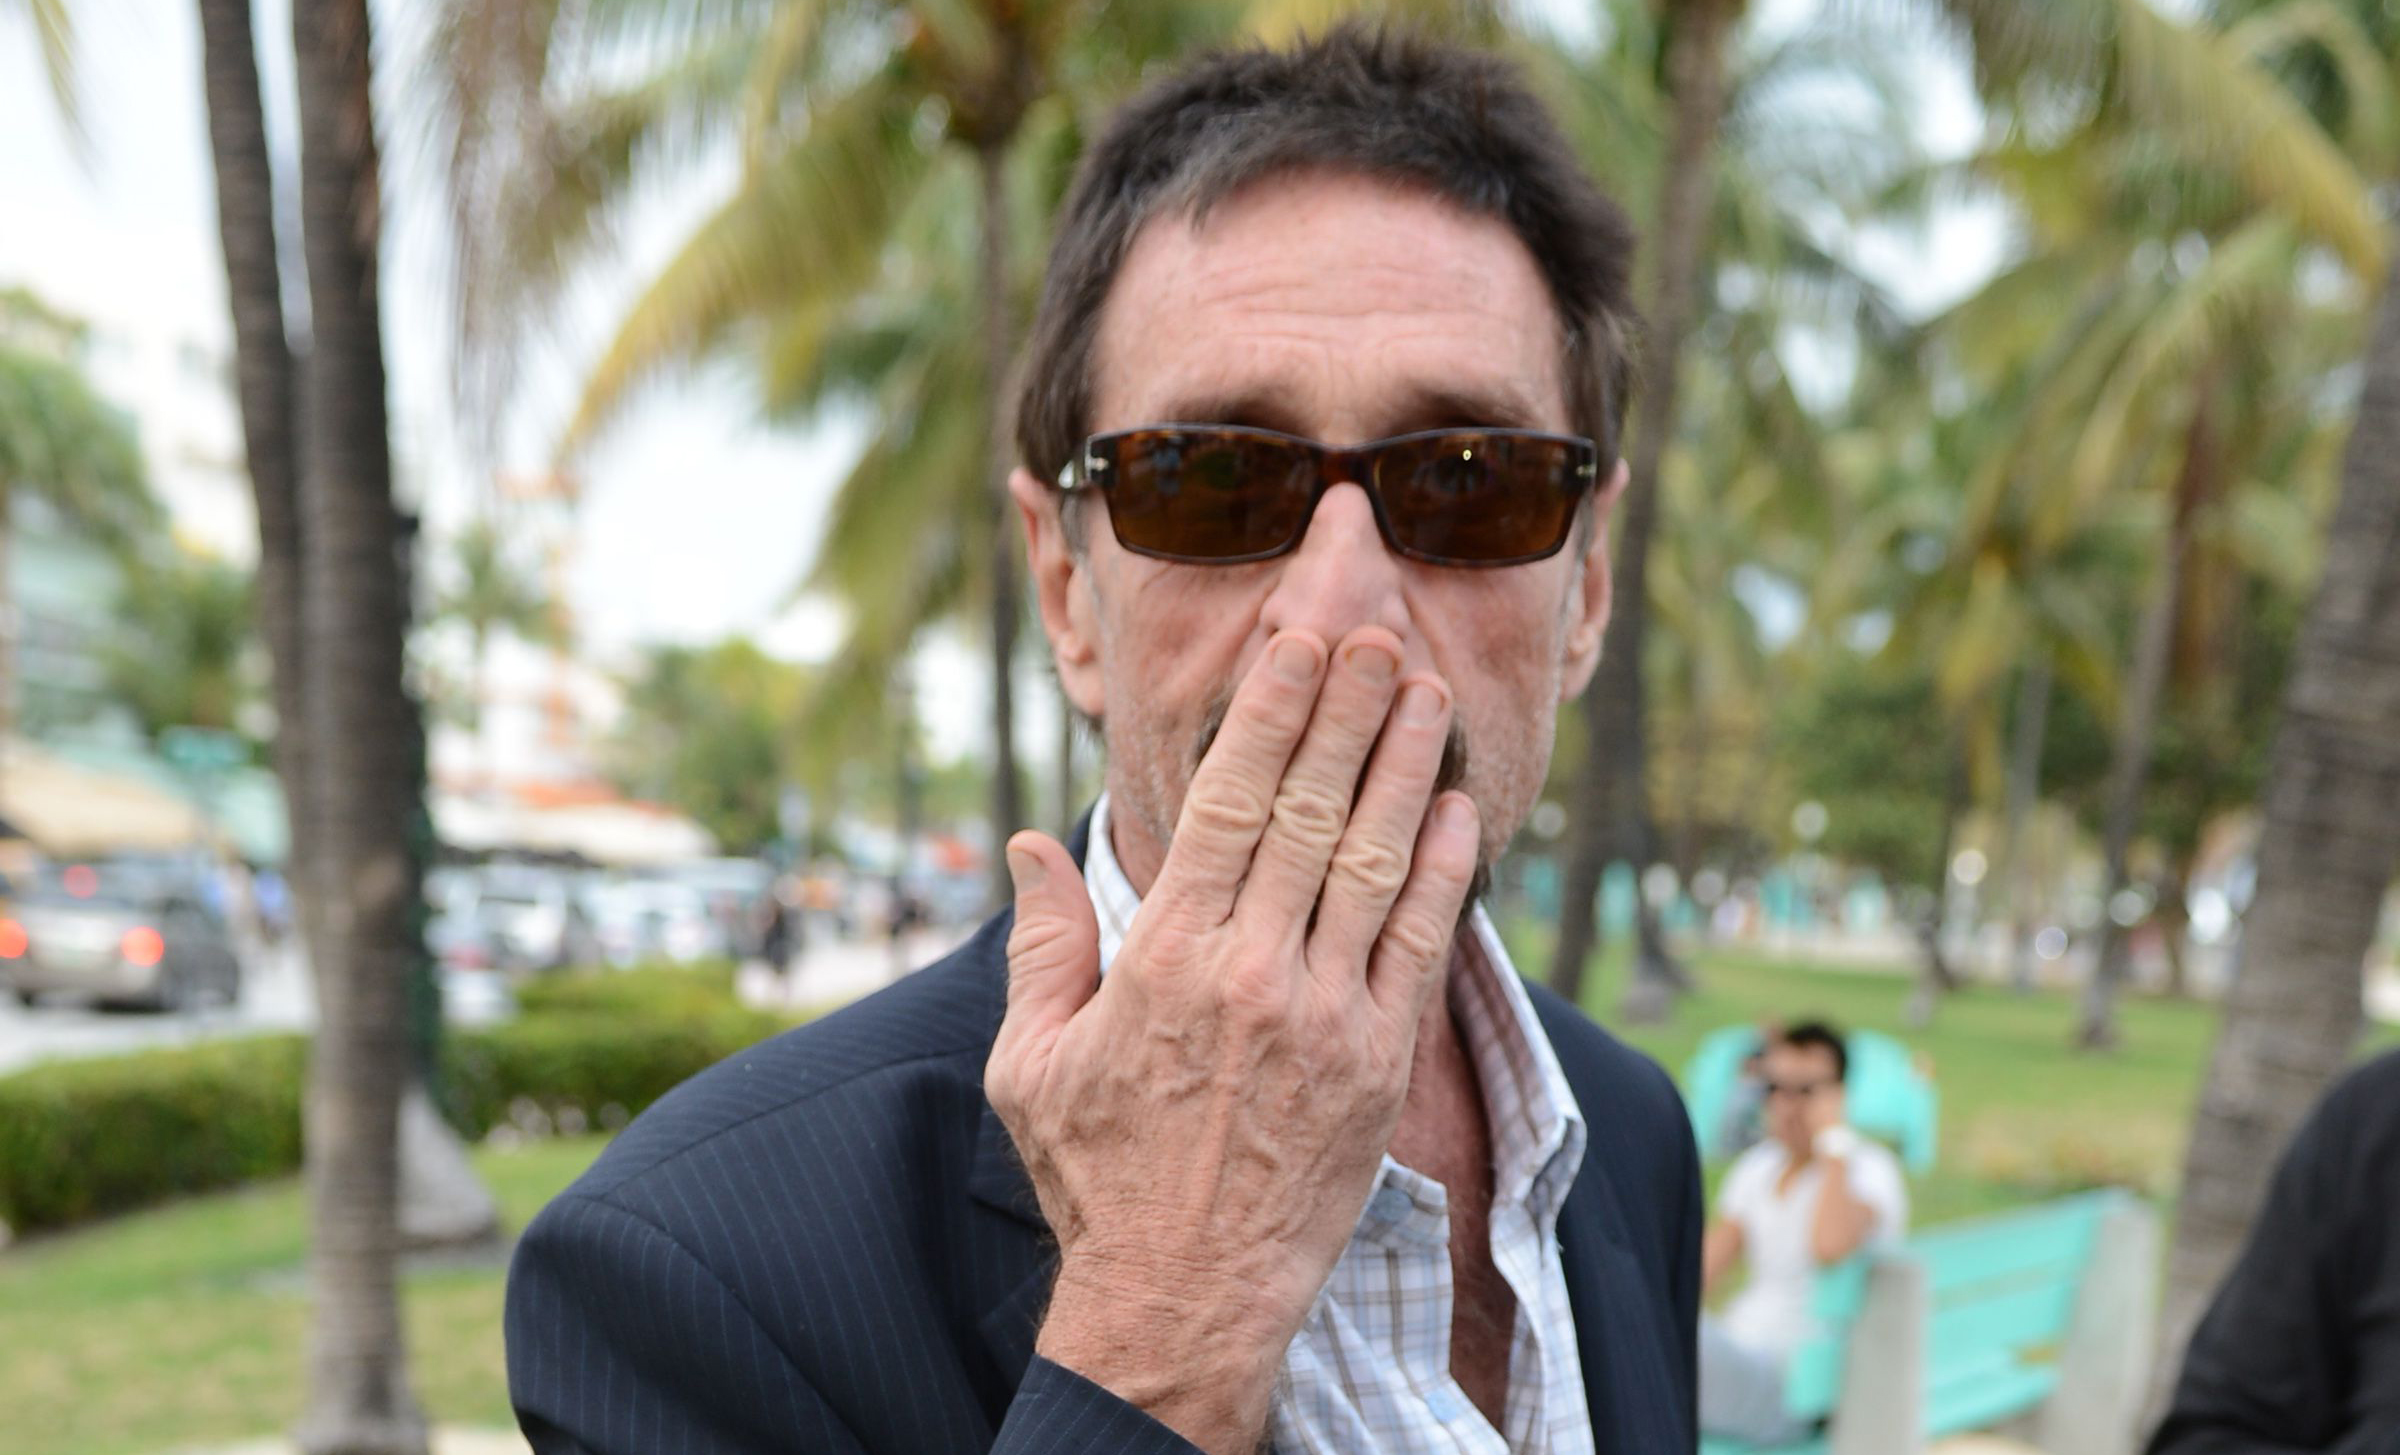 Belize Fugitive John McAfee Lands In Miami And Visits South Beach